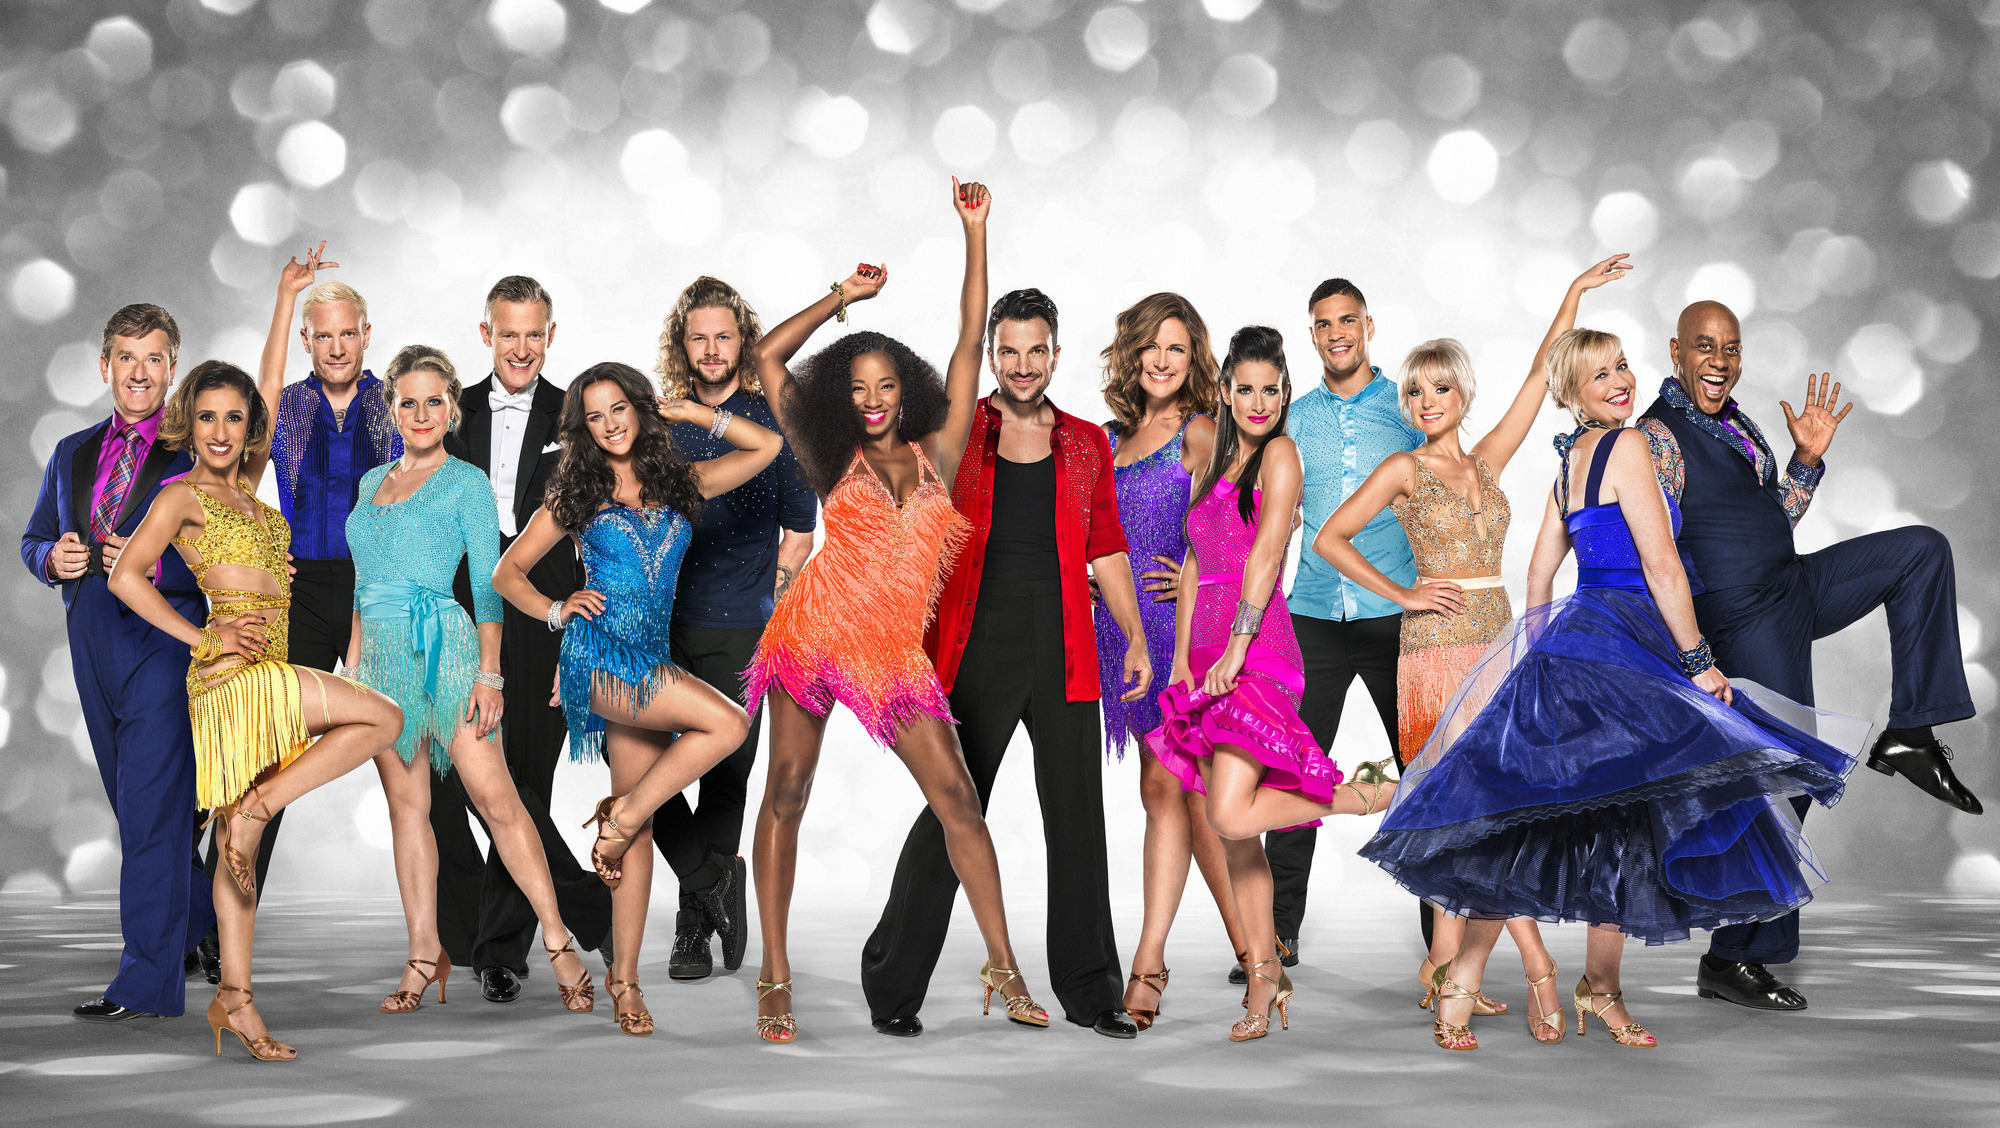 WARNING: Embargoed for publication until 00:00:01 on 15/09/2015 - Programme Name: Strictly Come Dancing 2015 - TX: 05/09/2015 - Episode: n/a (No. n/a) - Picture Shows: **EMBARGOED FOR PUBLICATION UNTIL 00:01 HRS ON TUESDAY 15TH SEPTEMBER** Daniel O'Donnell, Anita Rani, Iwan Thomas, Kellie Bright, Jeremy Vine, Georgia May Foote, Jay McGuiness, Jamelia, Peter Andre, Katie Derham, Kirsty Gallacher, Anthony Agogo, Helen George, Carol Kirkwood, Ainsley Harriott - (C) BBC - Photographer: Ray Burmiston